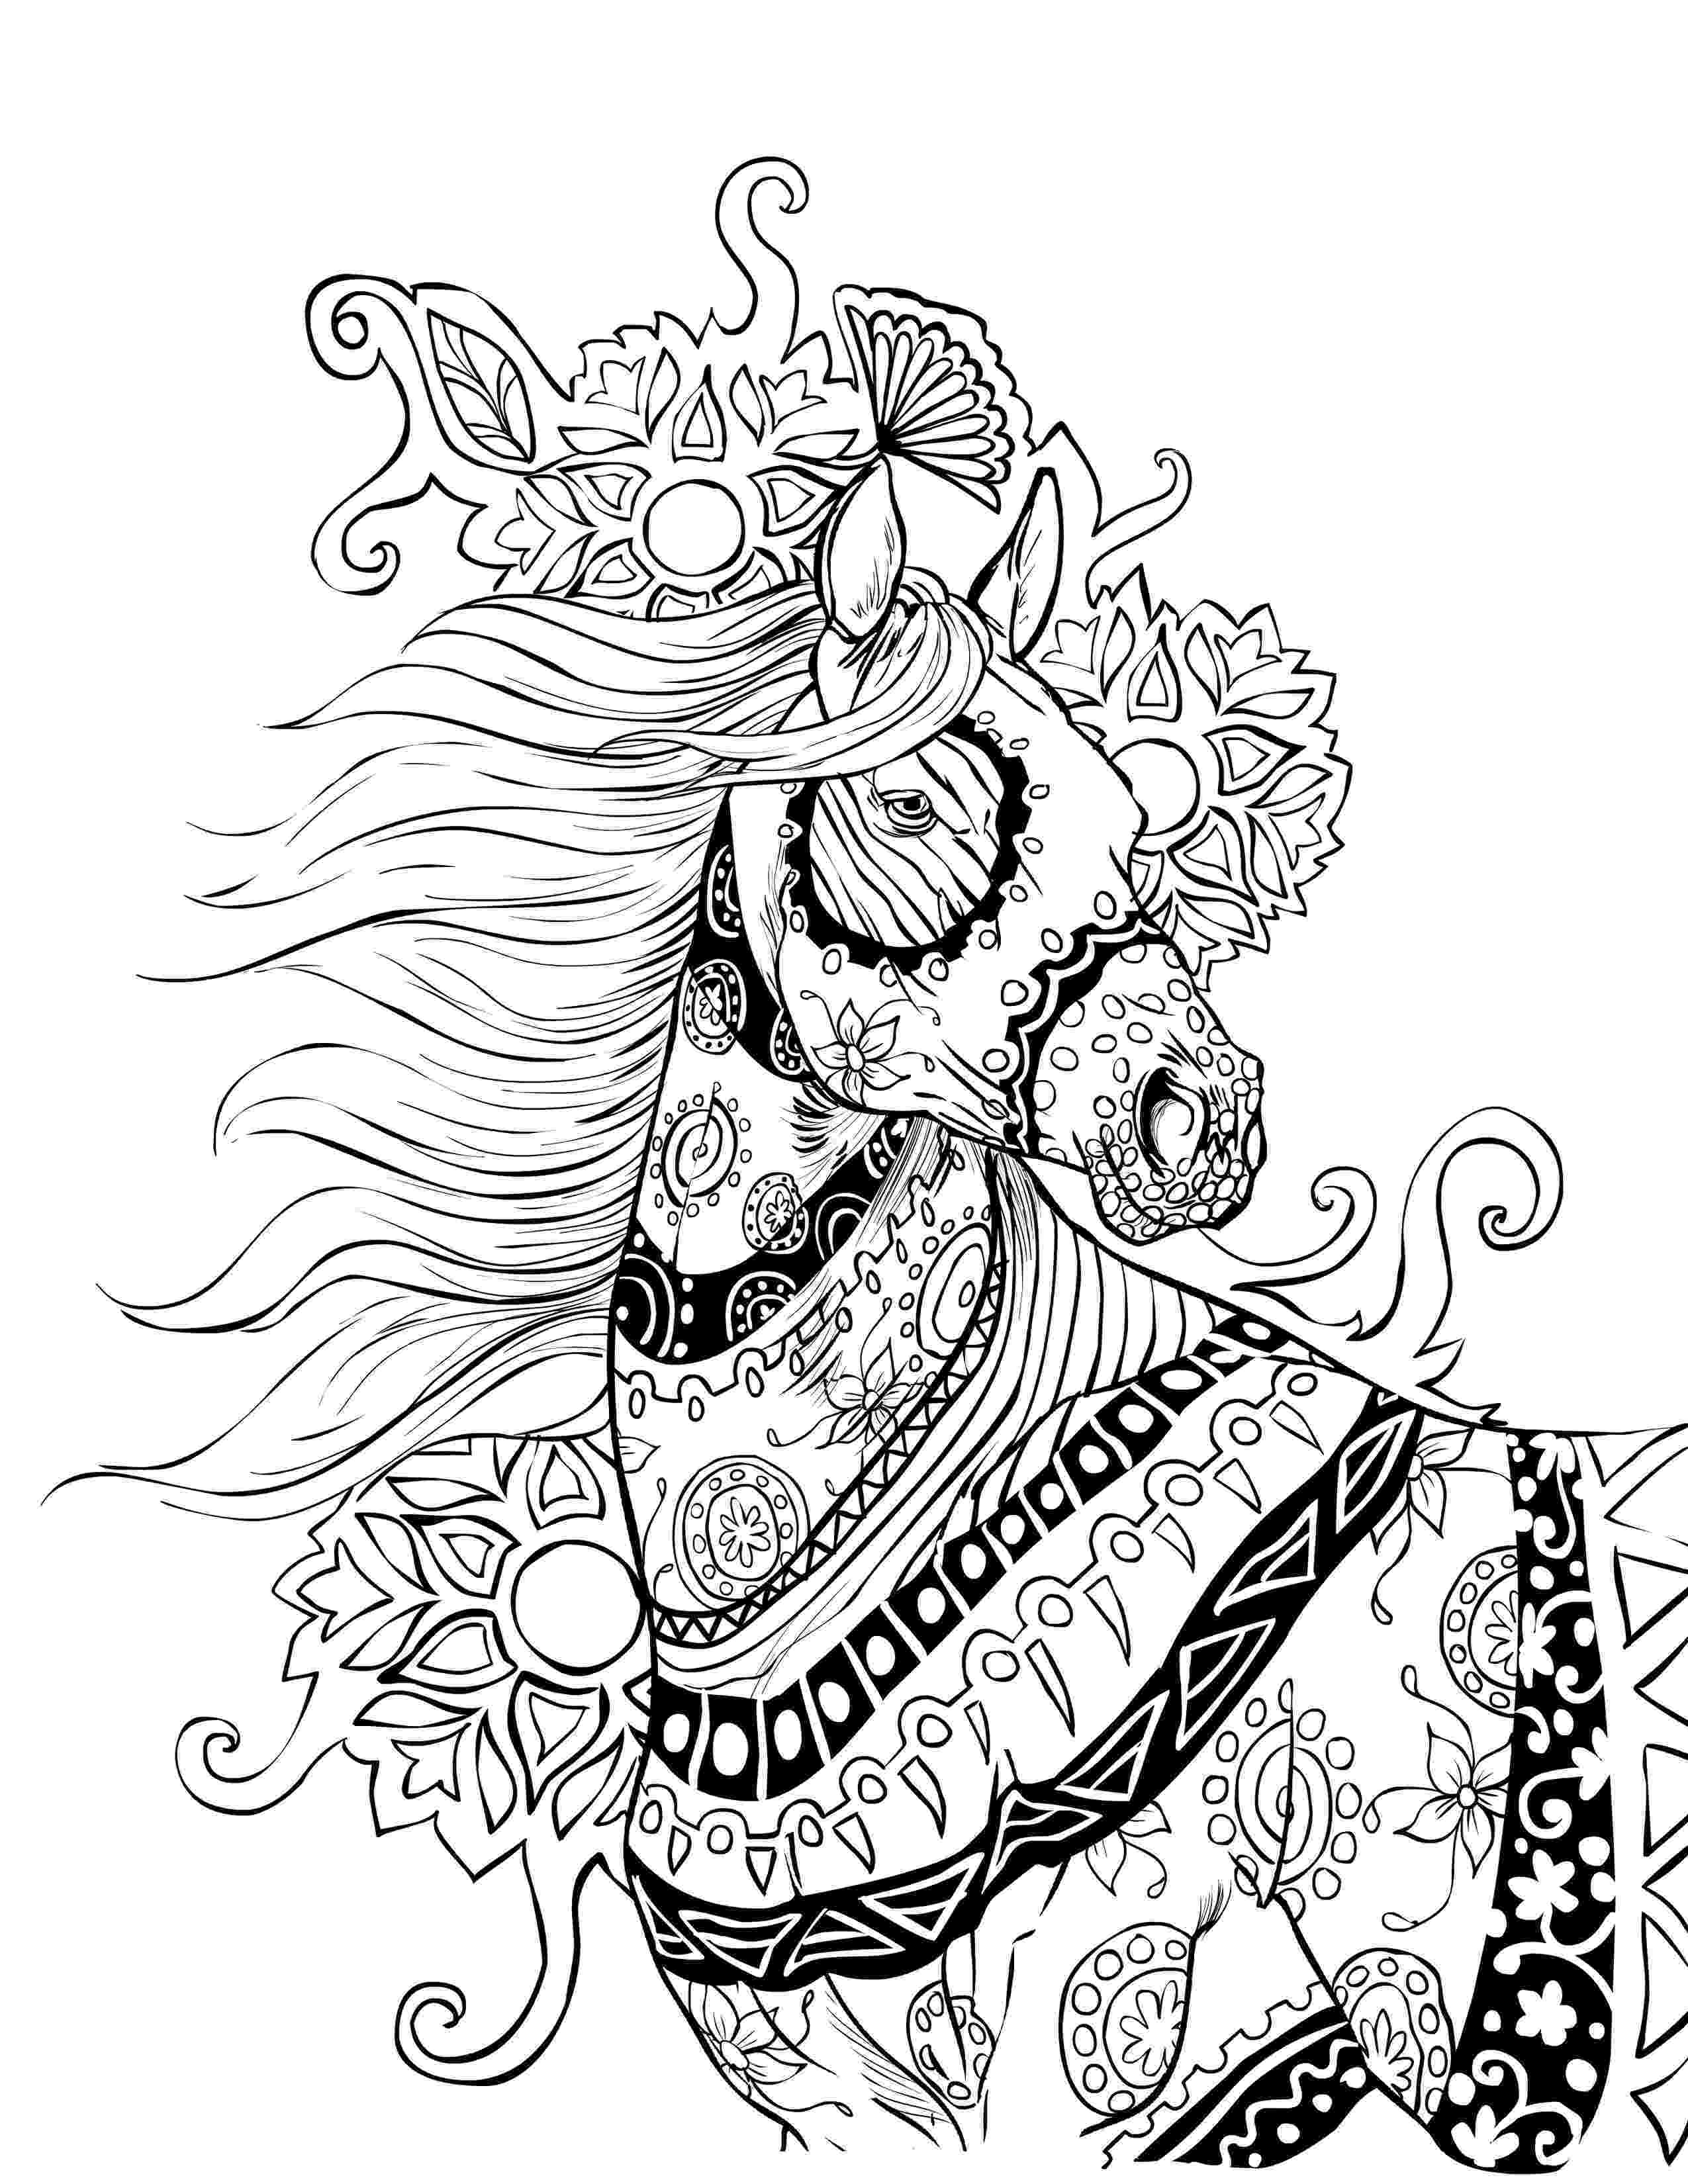 intricate coloring pages intricate mandala coloring pages coloring pages to intricate pages coloring